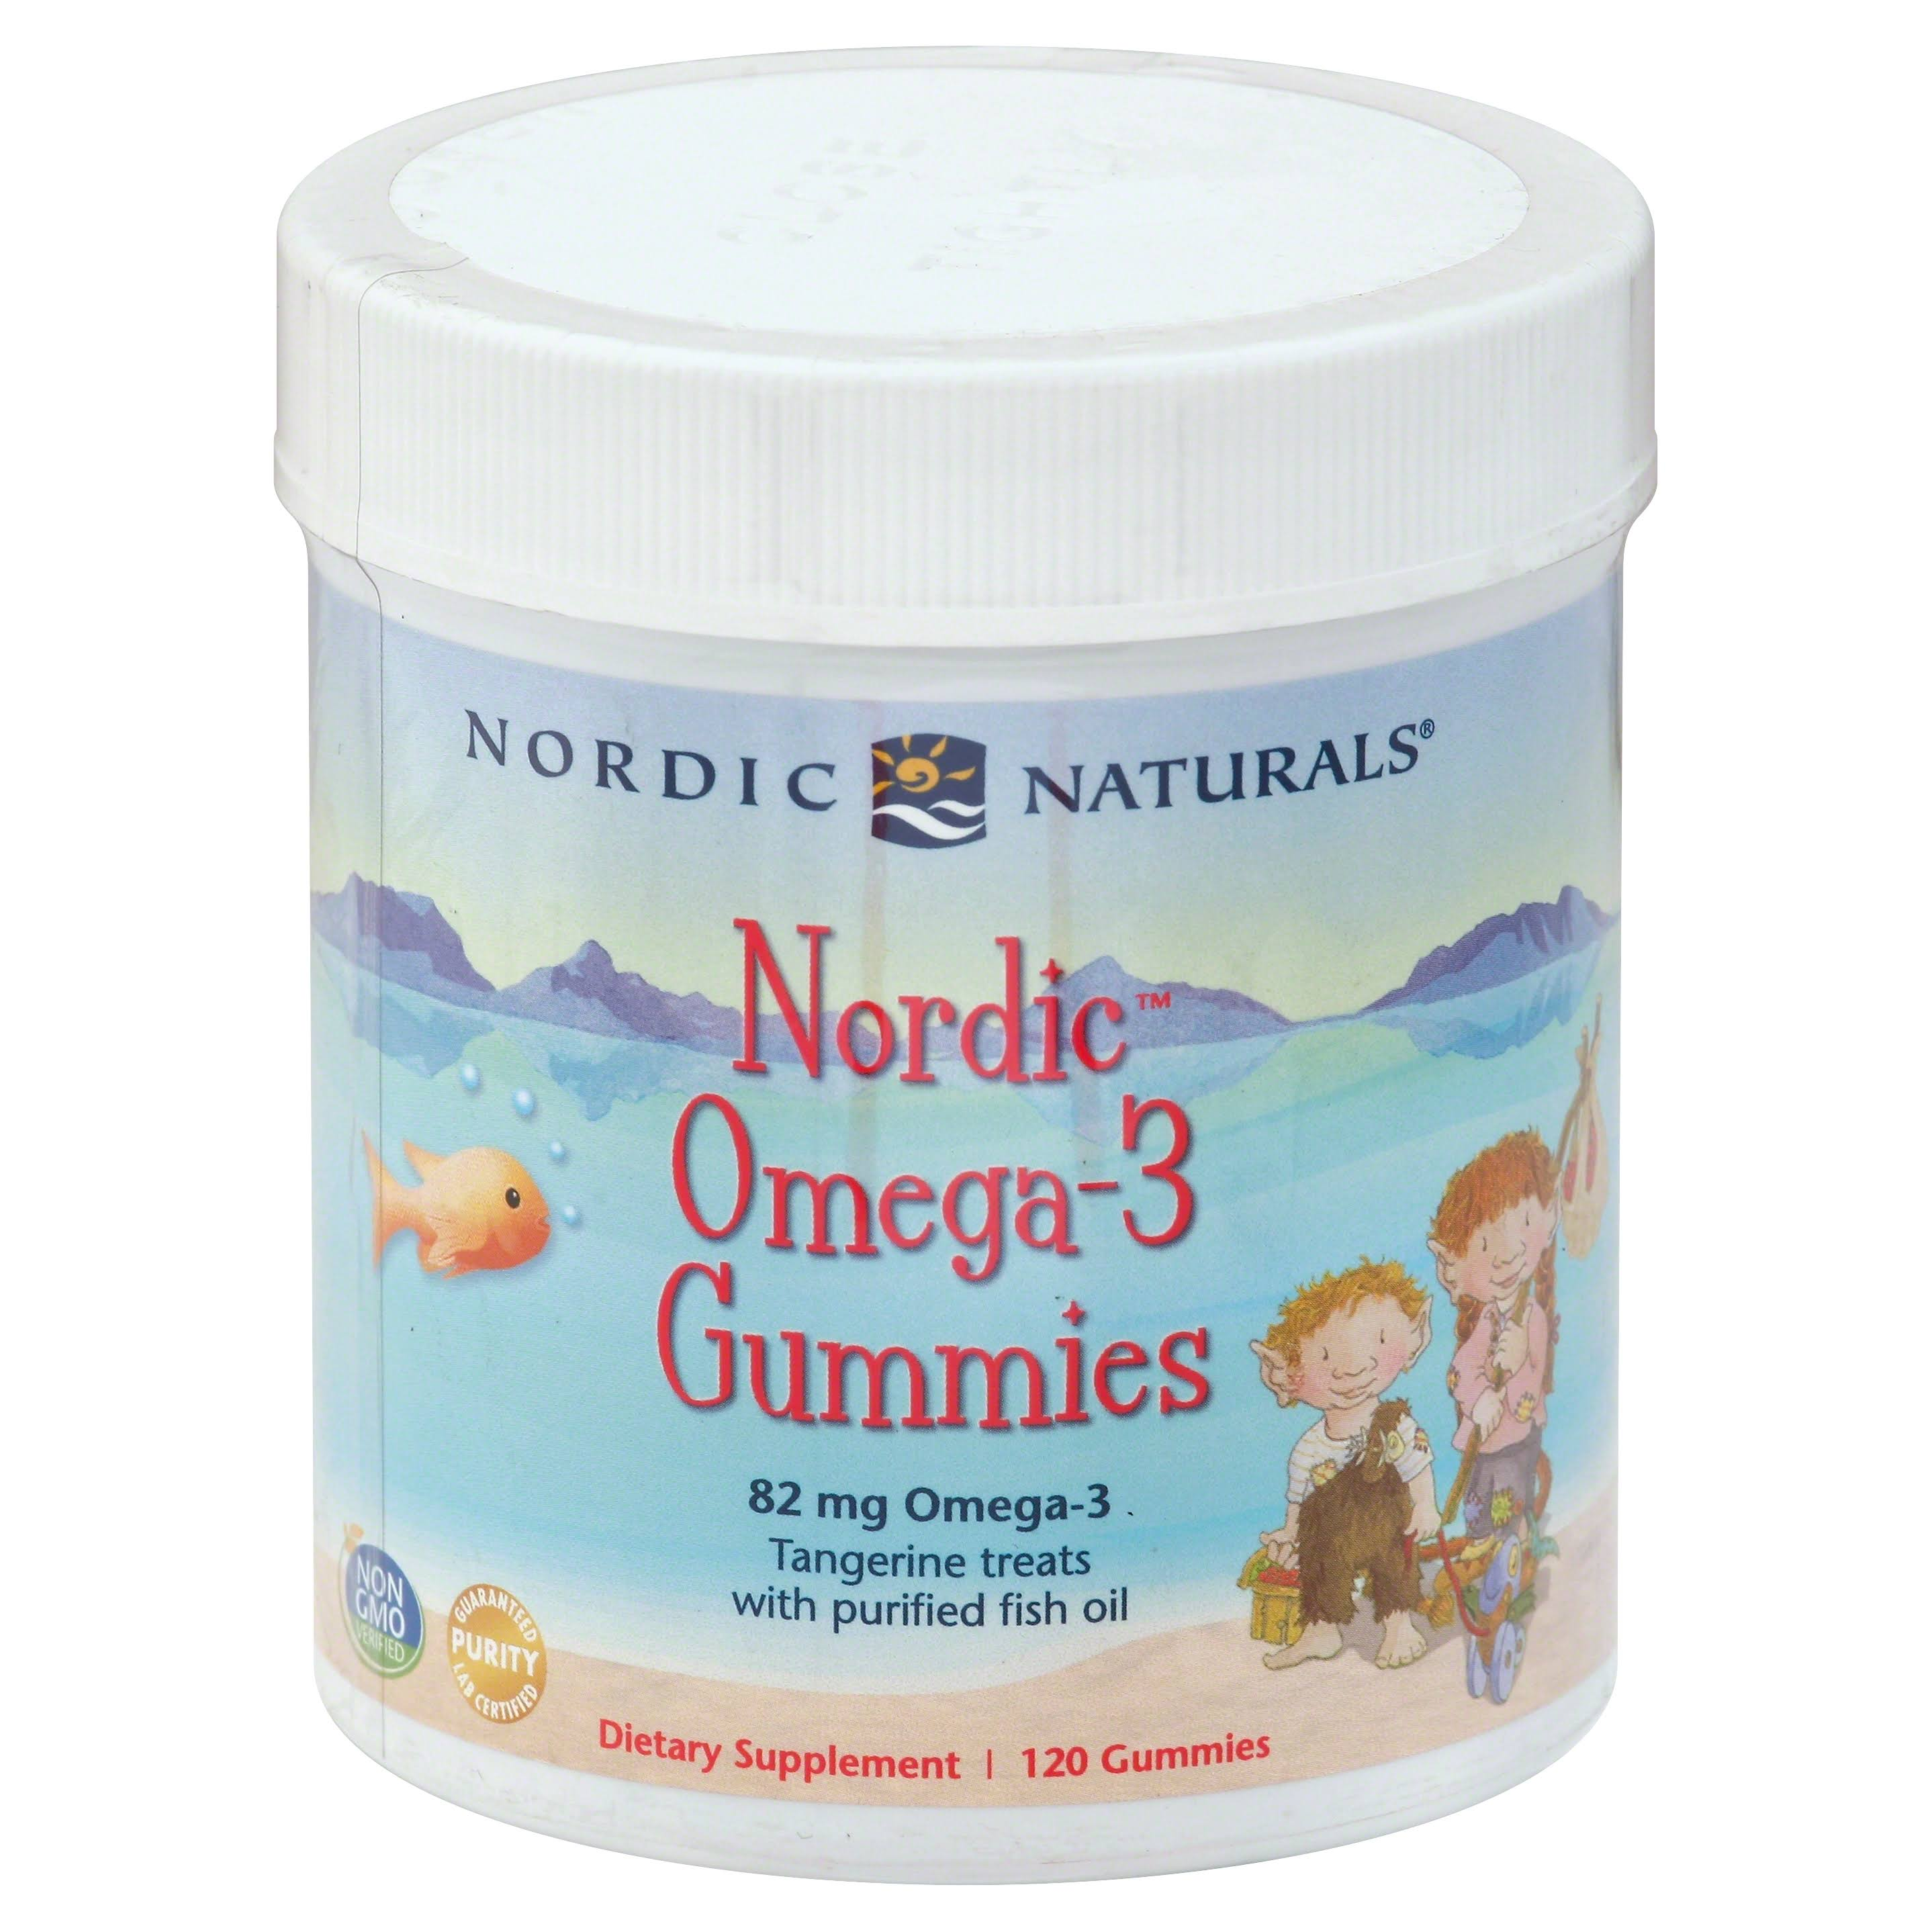 Nordic Naturals Nordic Omega-3 Gummies Dietary Supplement - 82mg, 120 Gummies